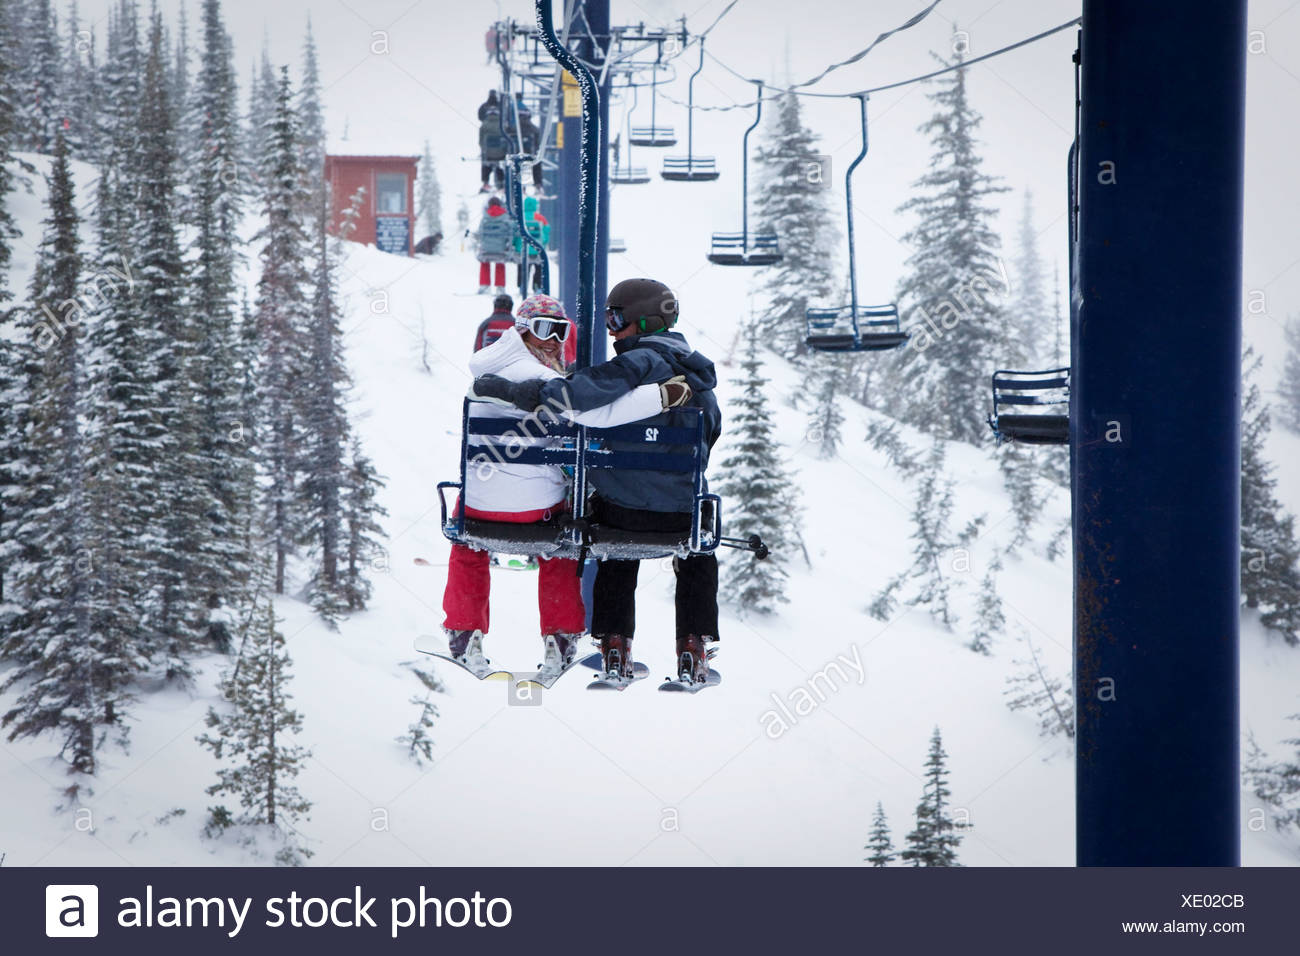 Two young adults smile while sitting on a double chairlift at a ski resort in Idaho. Stock Photo